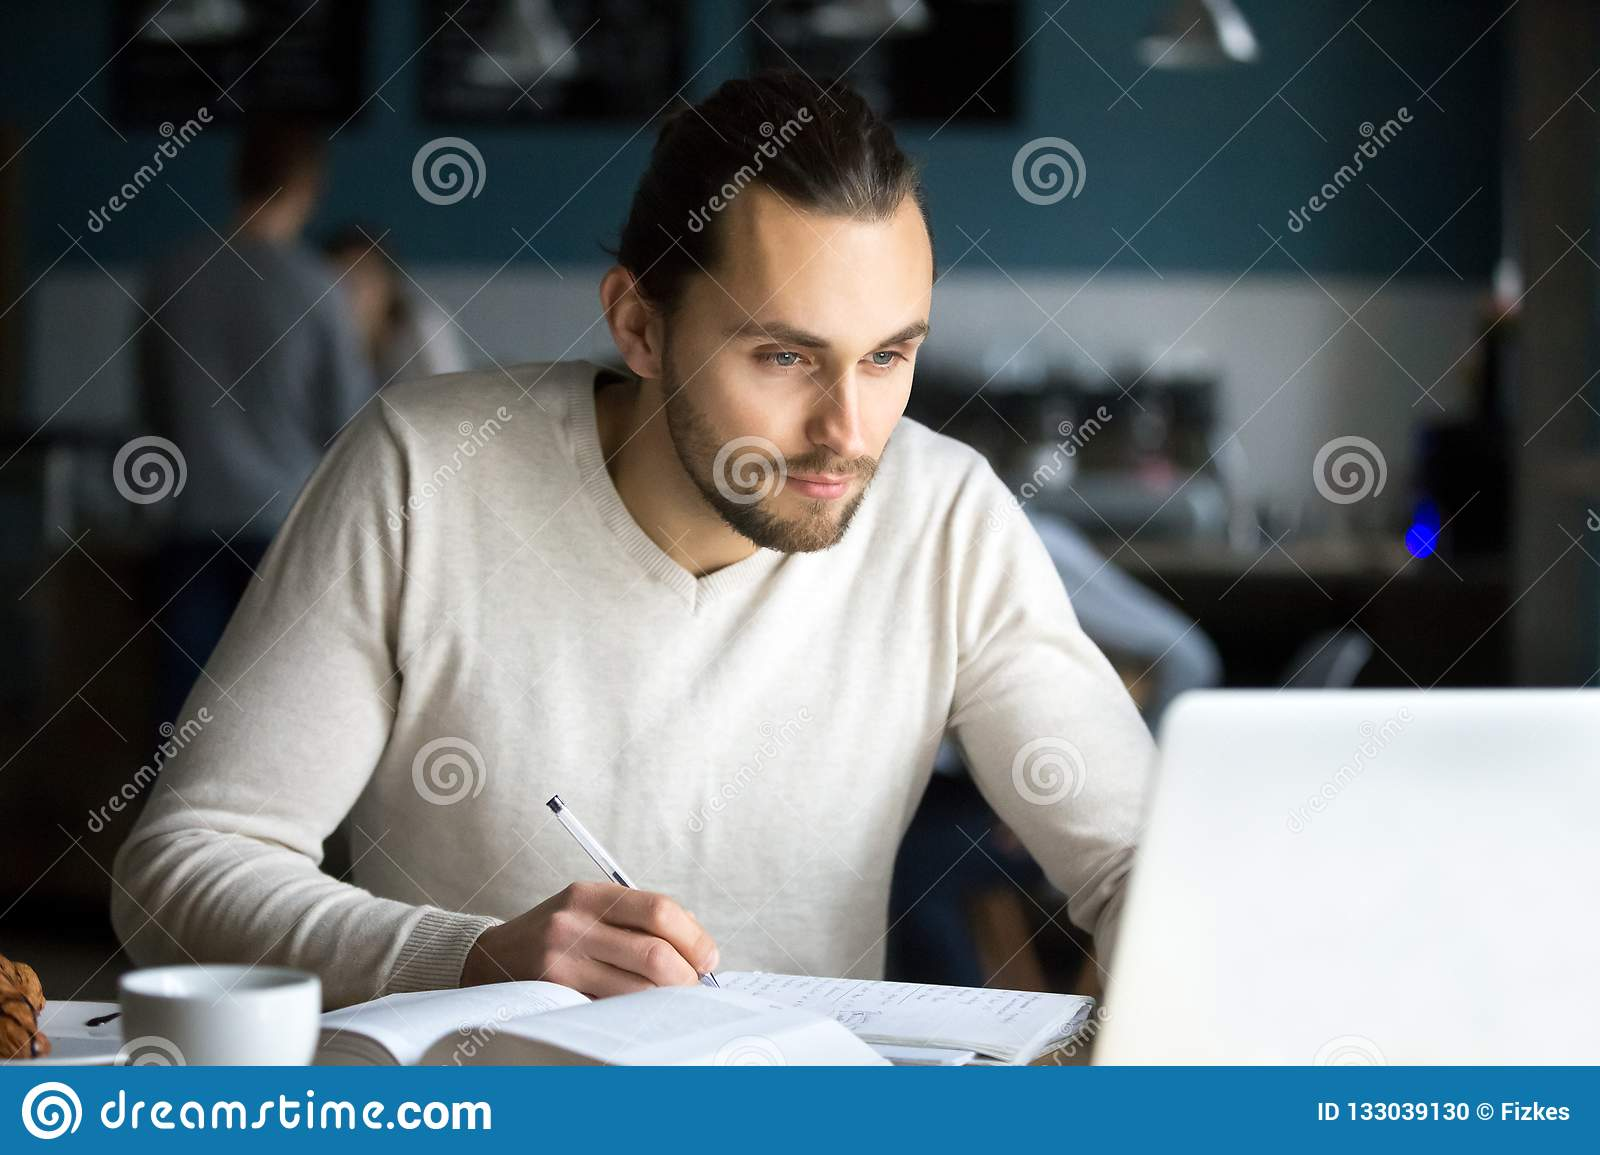 Focused male student studying with laptop out in cafe